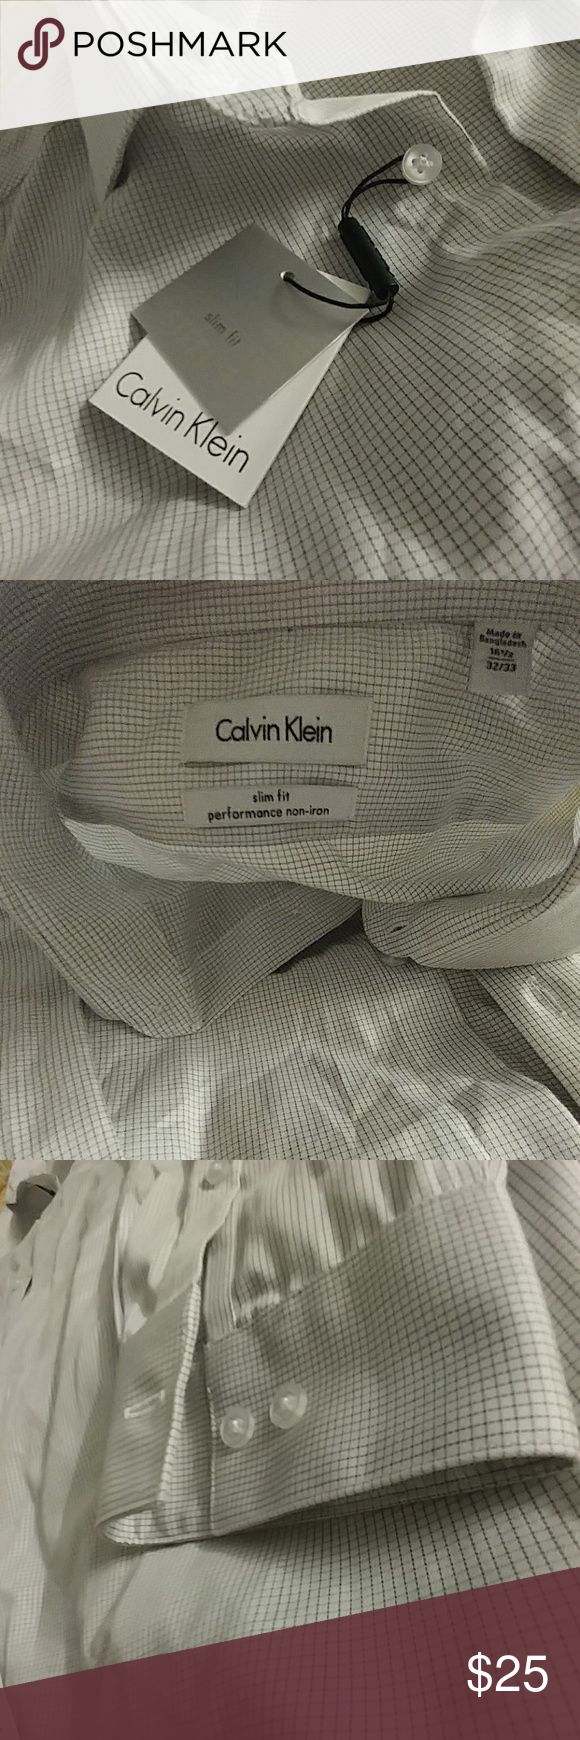 Calvin Klein Slim Fit dress shirt *Brand New *Slim Fit *16 1/2 32/33 size *NWT *Smoke free home Calvin Klein Shirts Dress Shirts